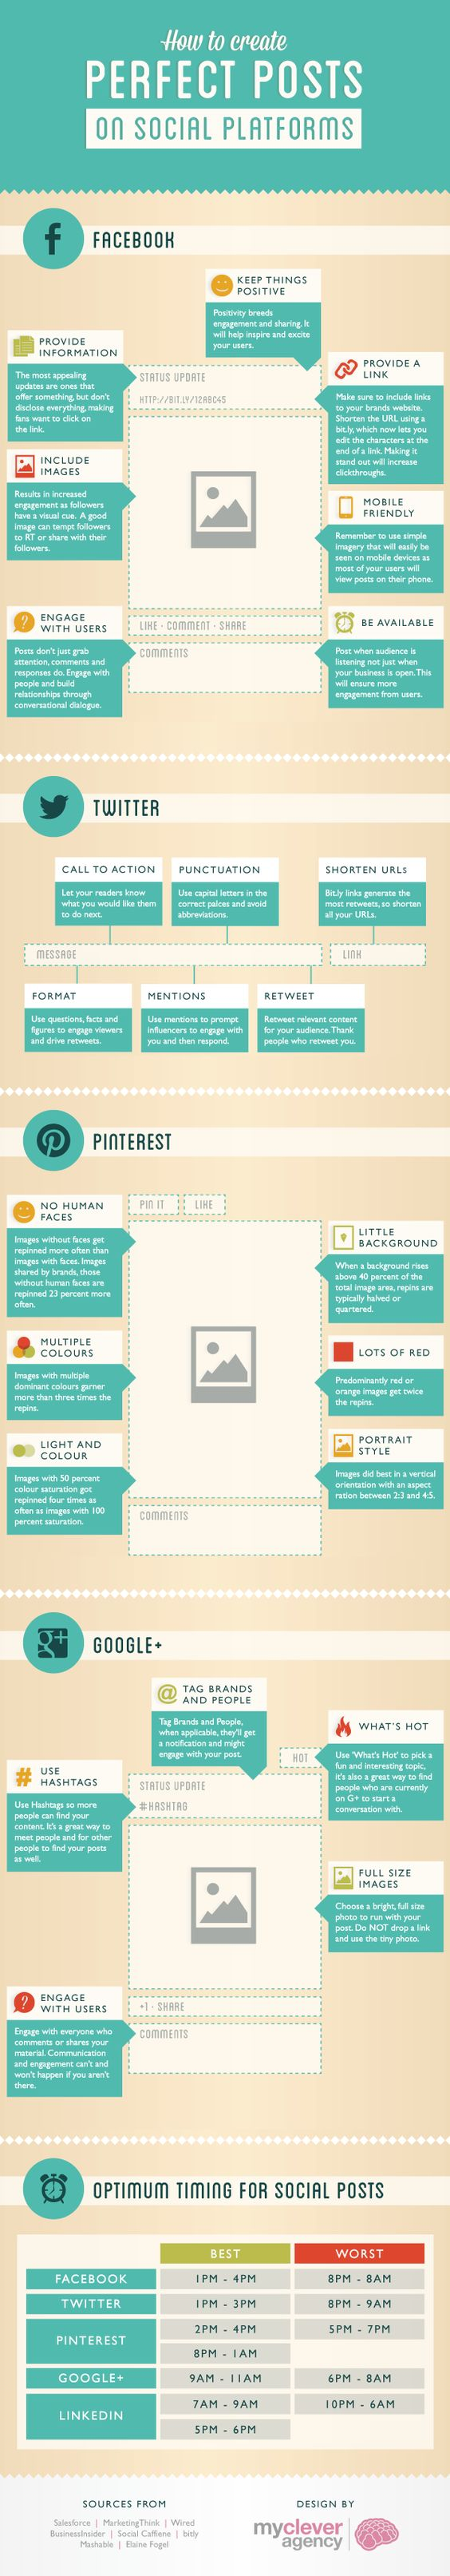 Perfect Post Types for Facebook, Twitter, Google Plus & Pinterest | Infographic: